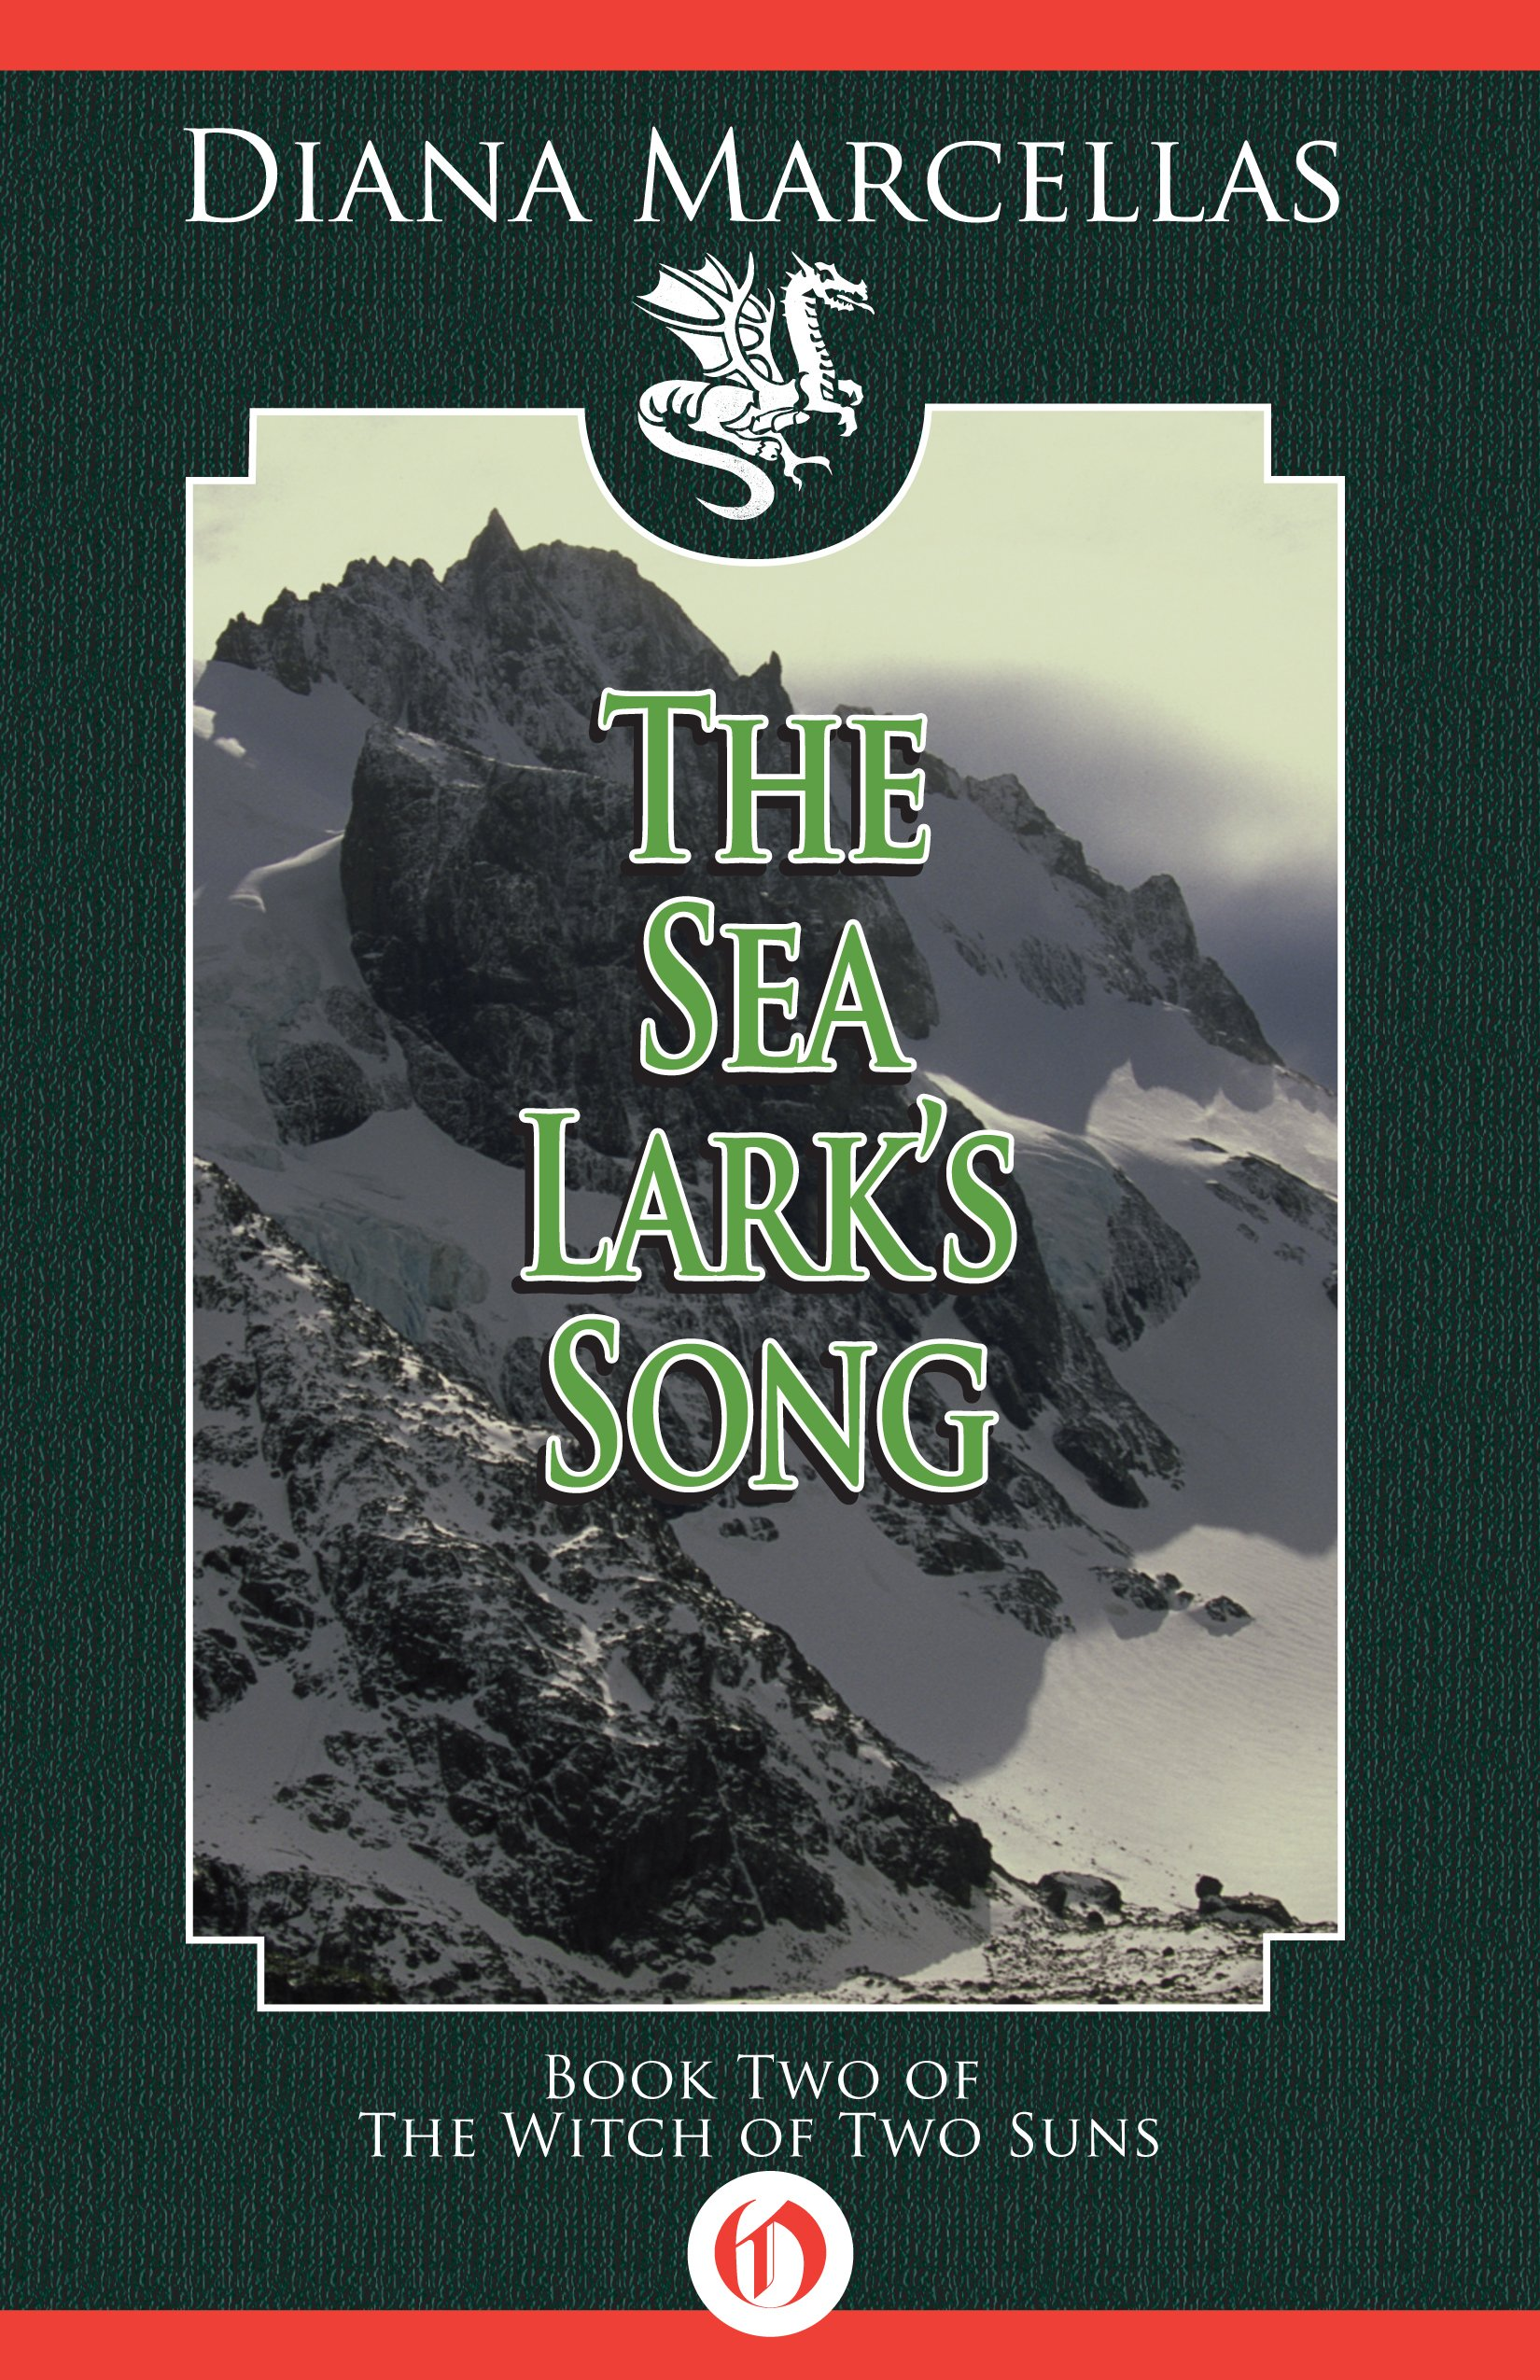 The Sea Lark's Song